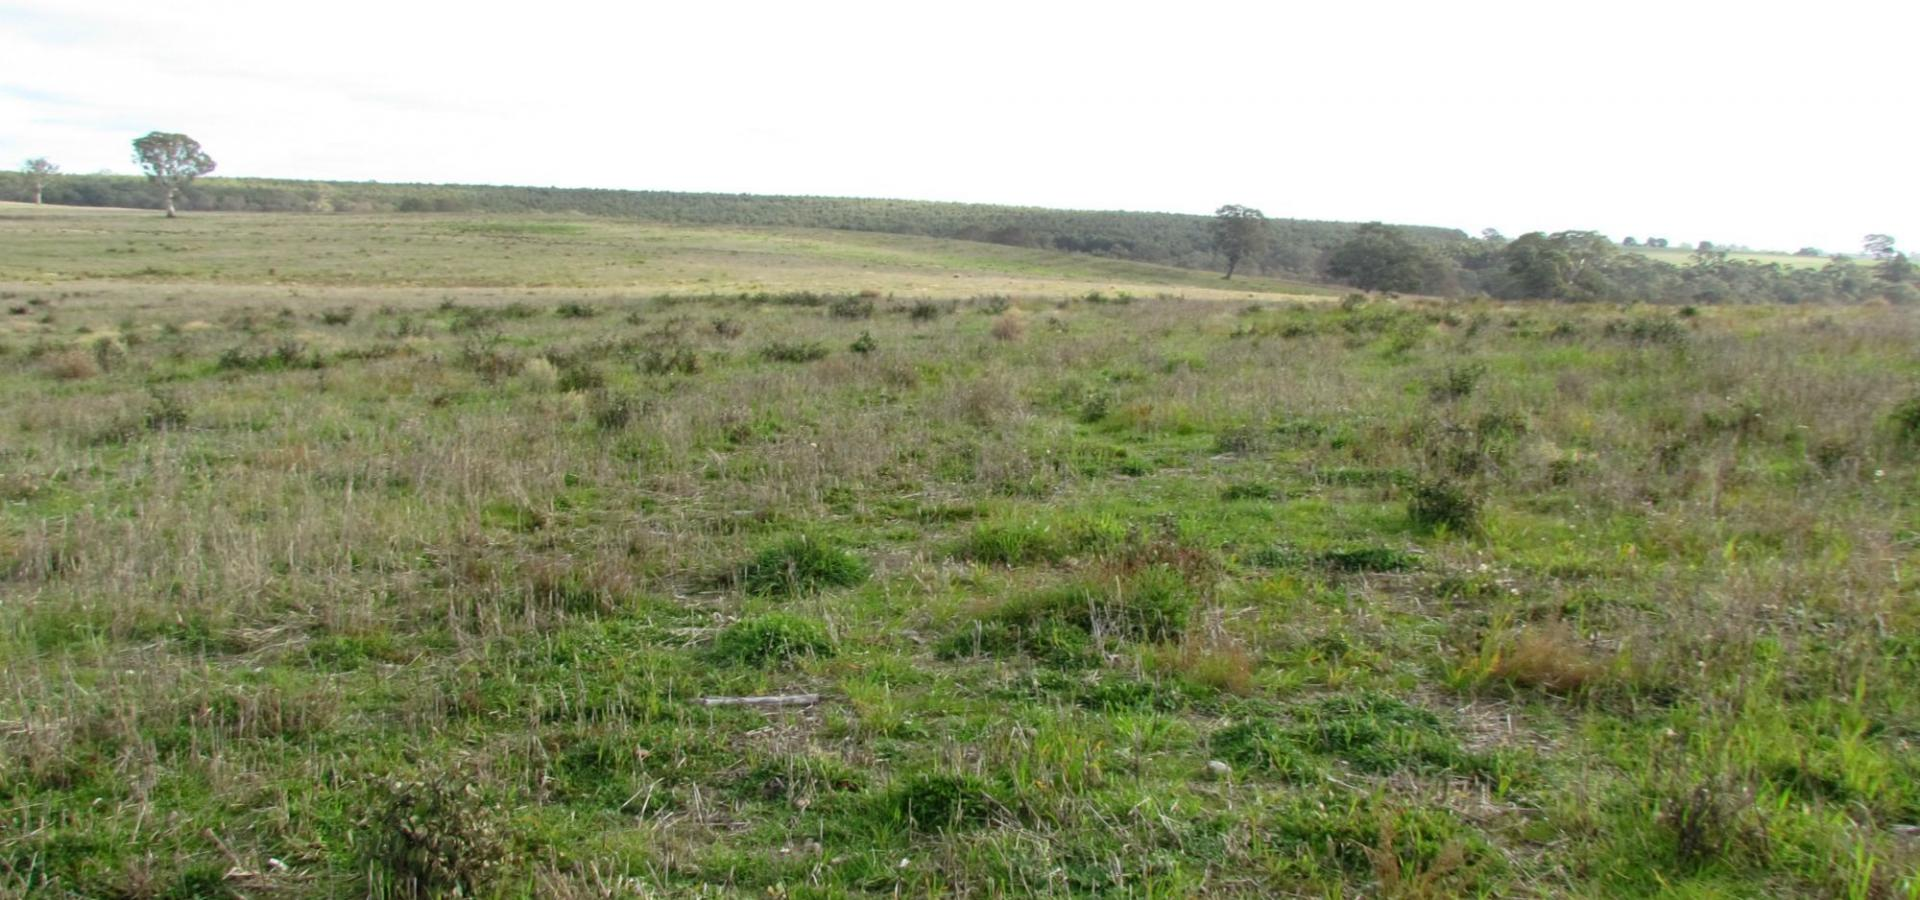 1546 Chetwynd East Road - Chetwynd 320.52 Hectares